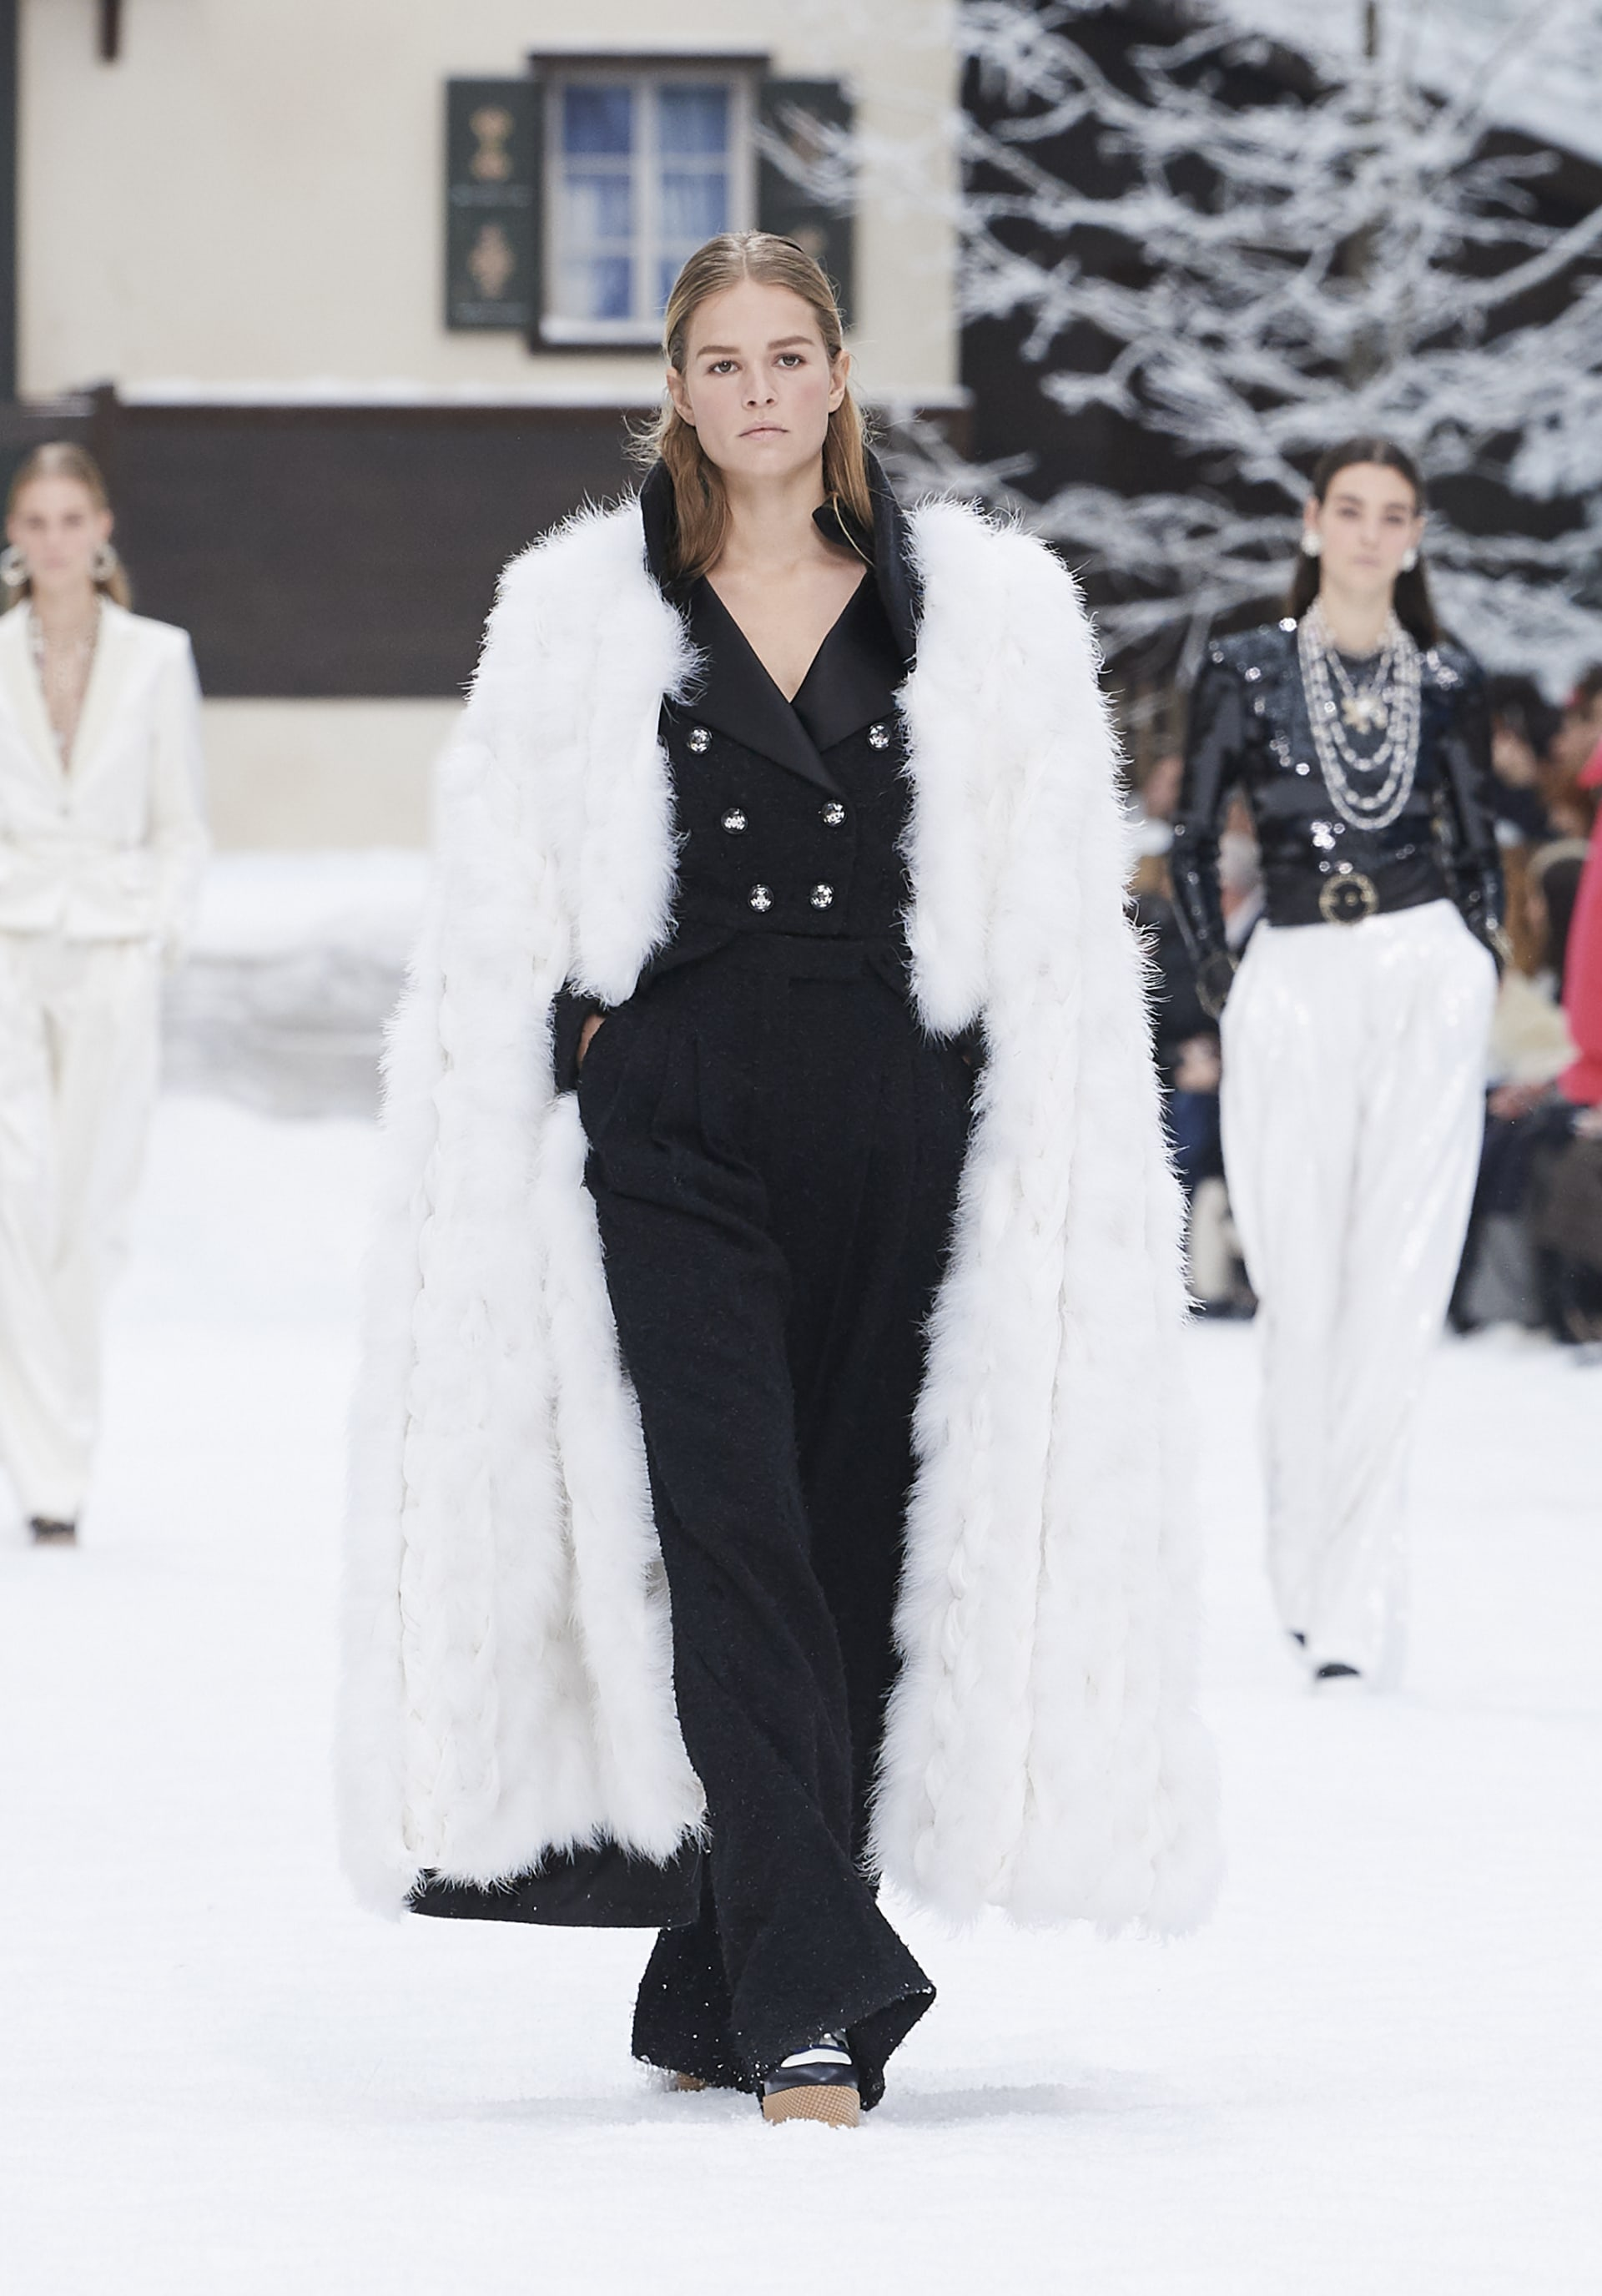 View 1 - Look 59 - Fall-Winter 2019/20